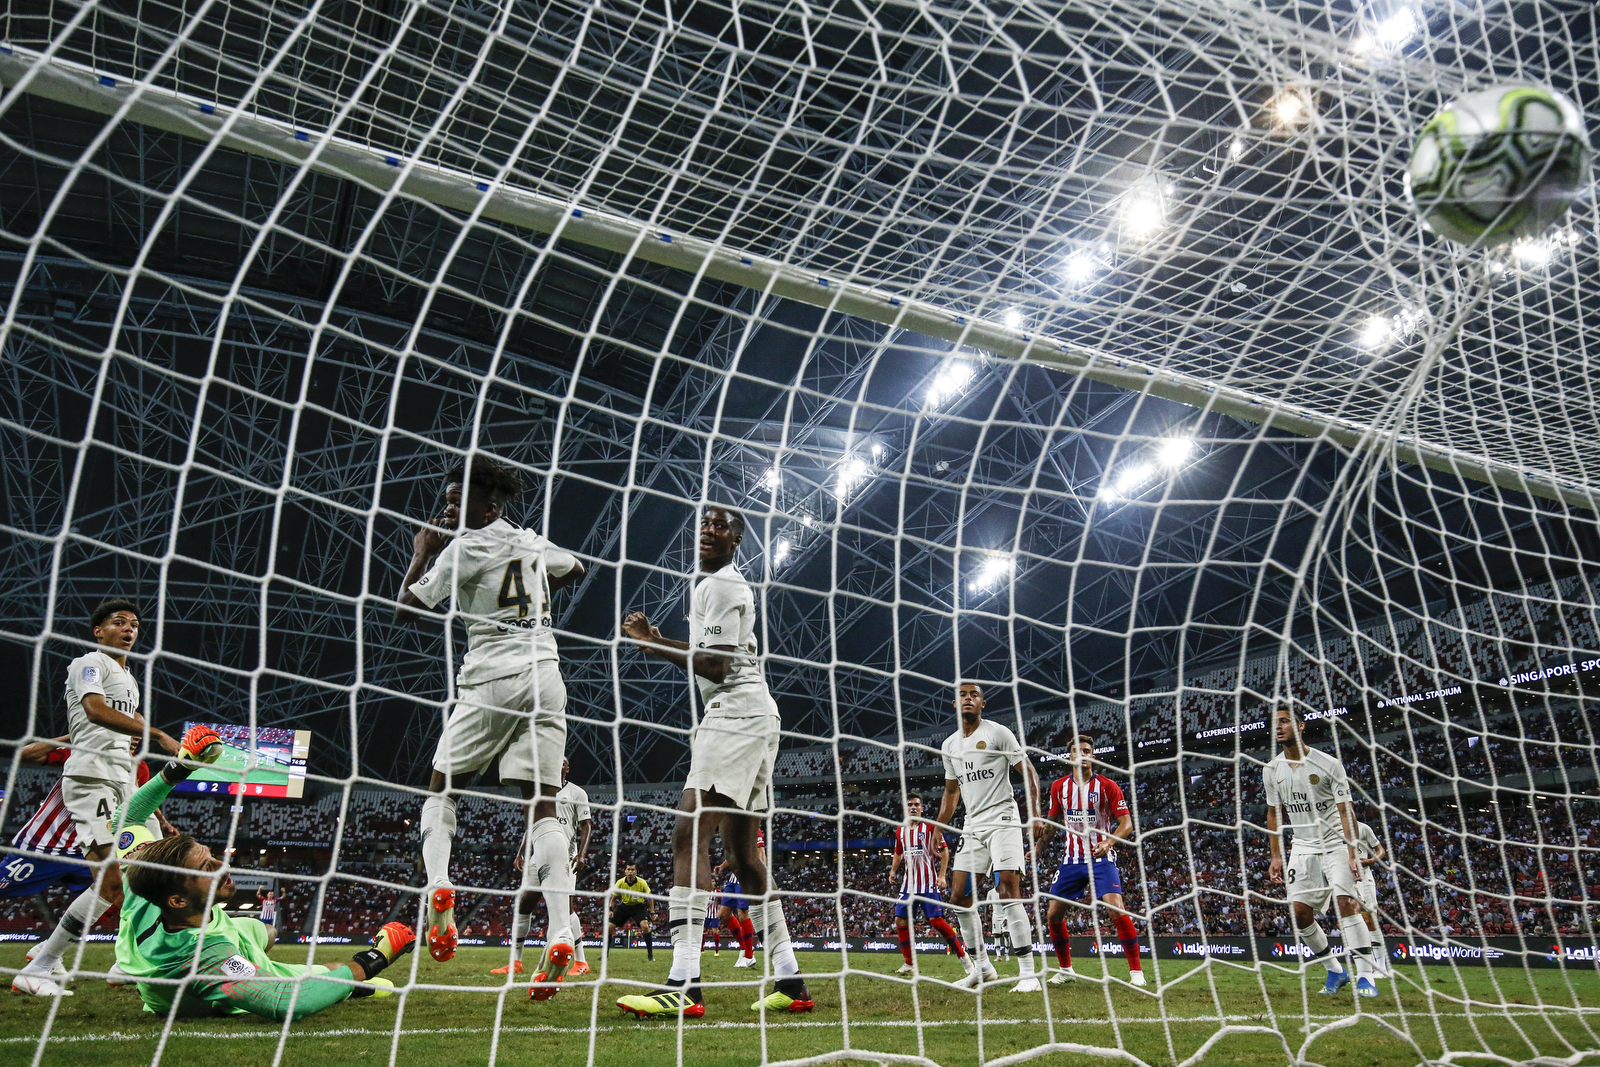 Atletico Madrid's Victor Mollejo, left, scores their first goal during the International Champions Cup match between Paris Saint-Germain and Atletico Madrid in Singapore, Monday, July 30, 2018. (AP Photo/Yong Teck Lim)